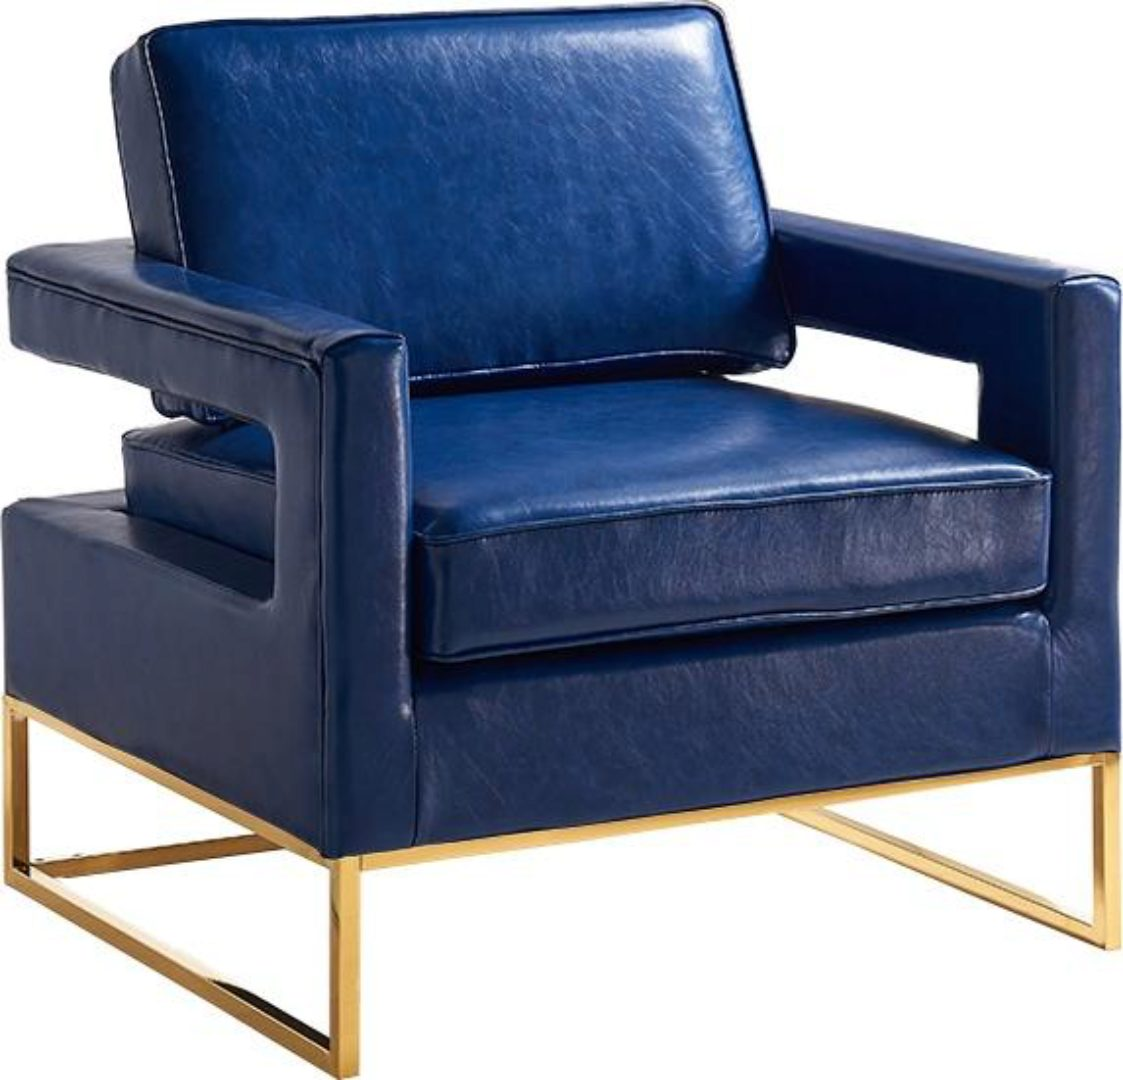 Picture of: Blue Oversized Chair Online Up To 70 Off Ny Furniture Outlets